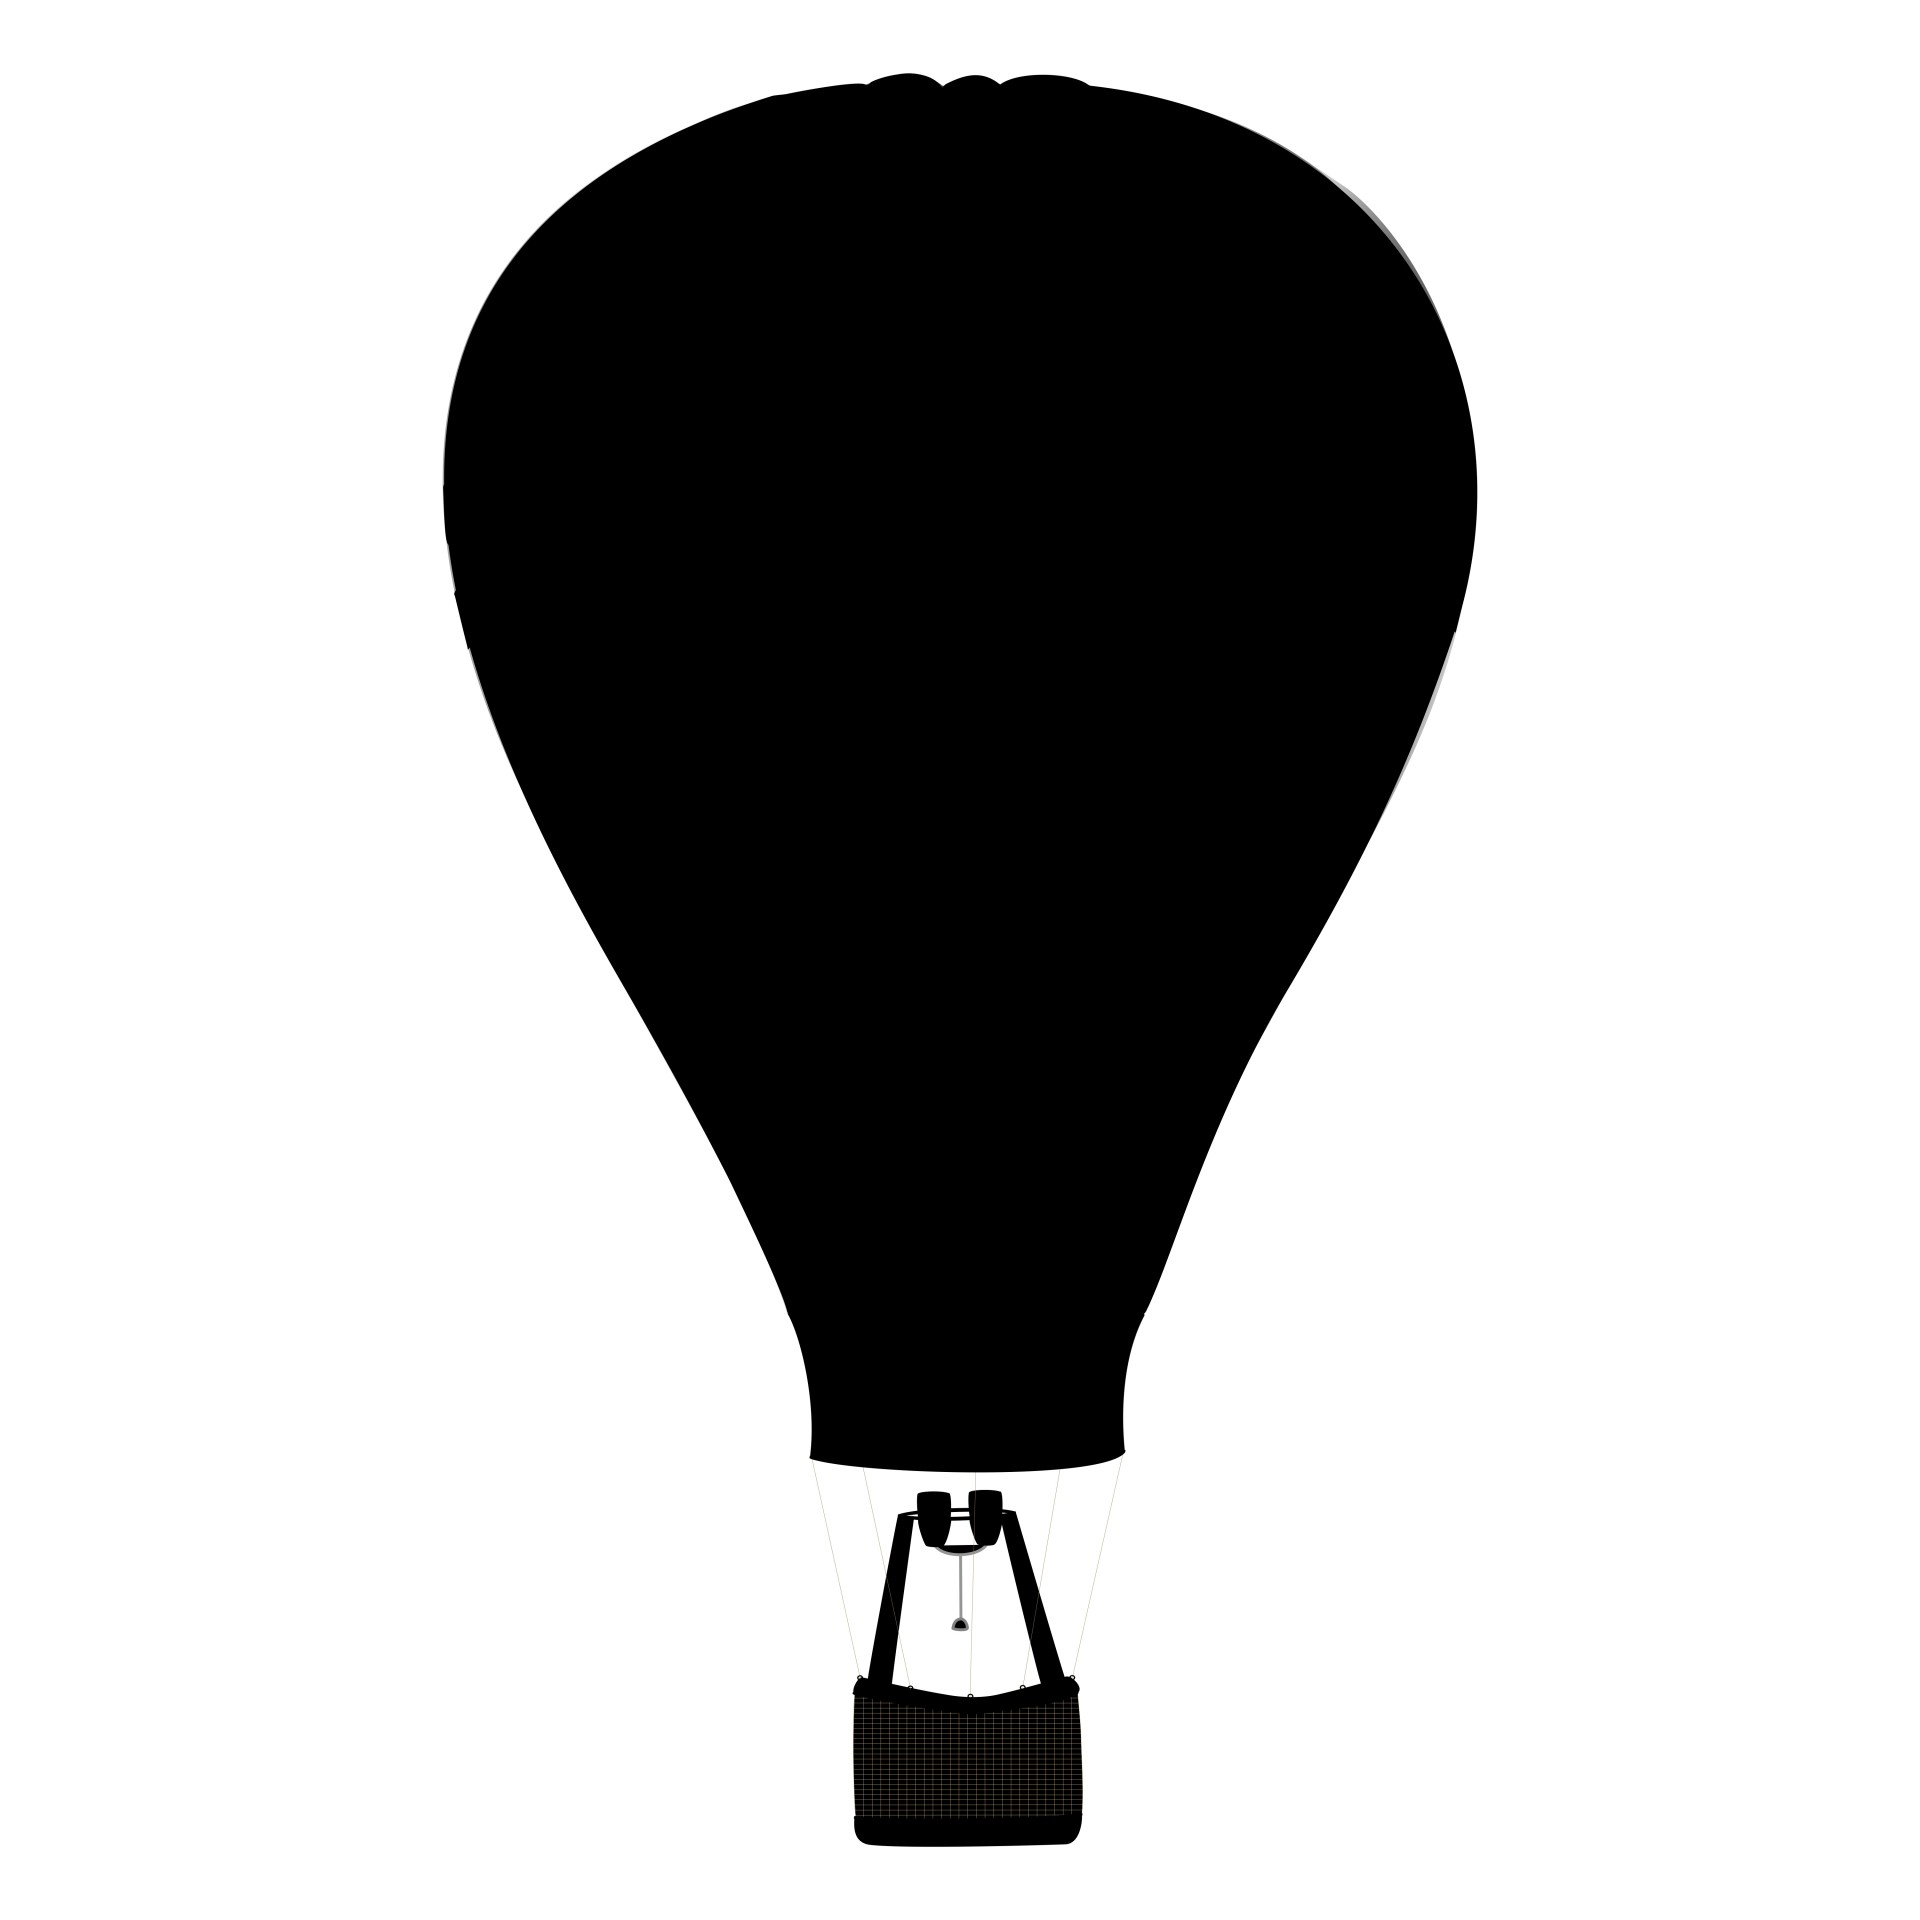 1920x1920 Hot Air Balloon Free Stock Photo